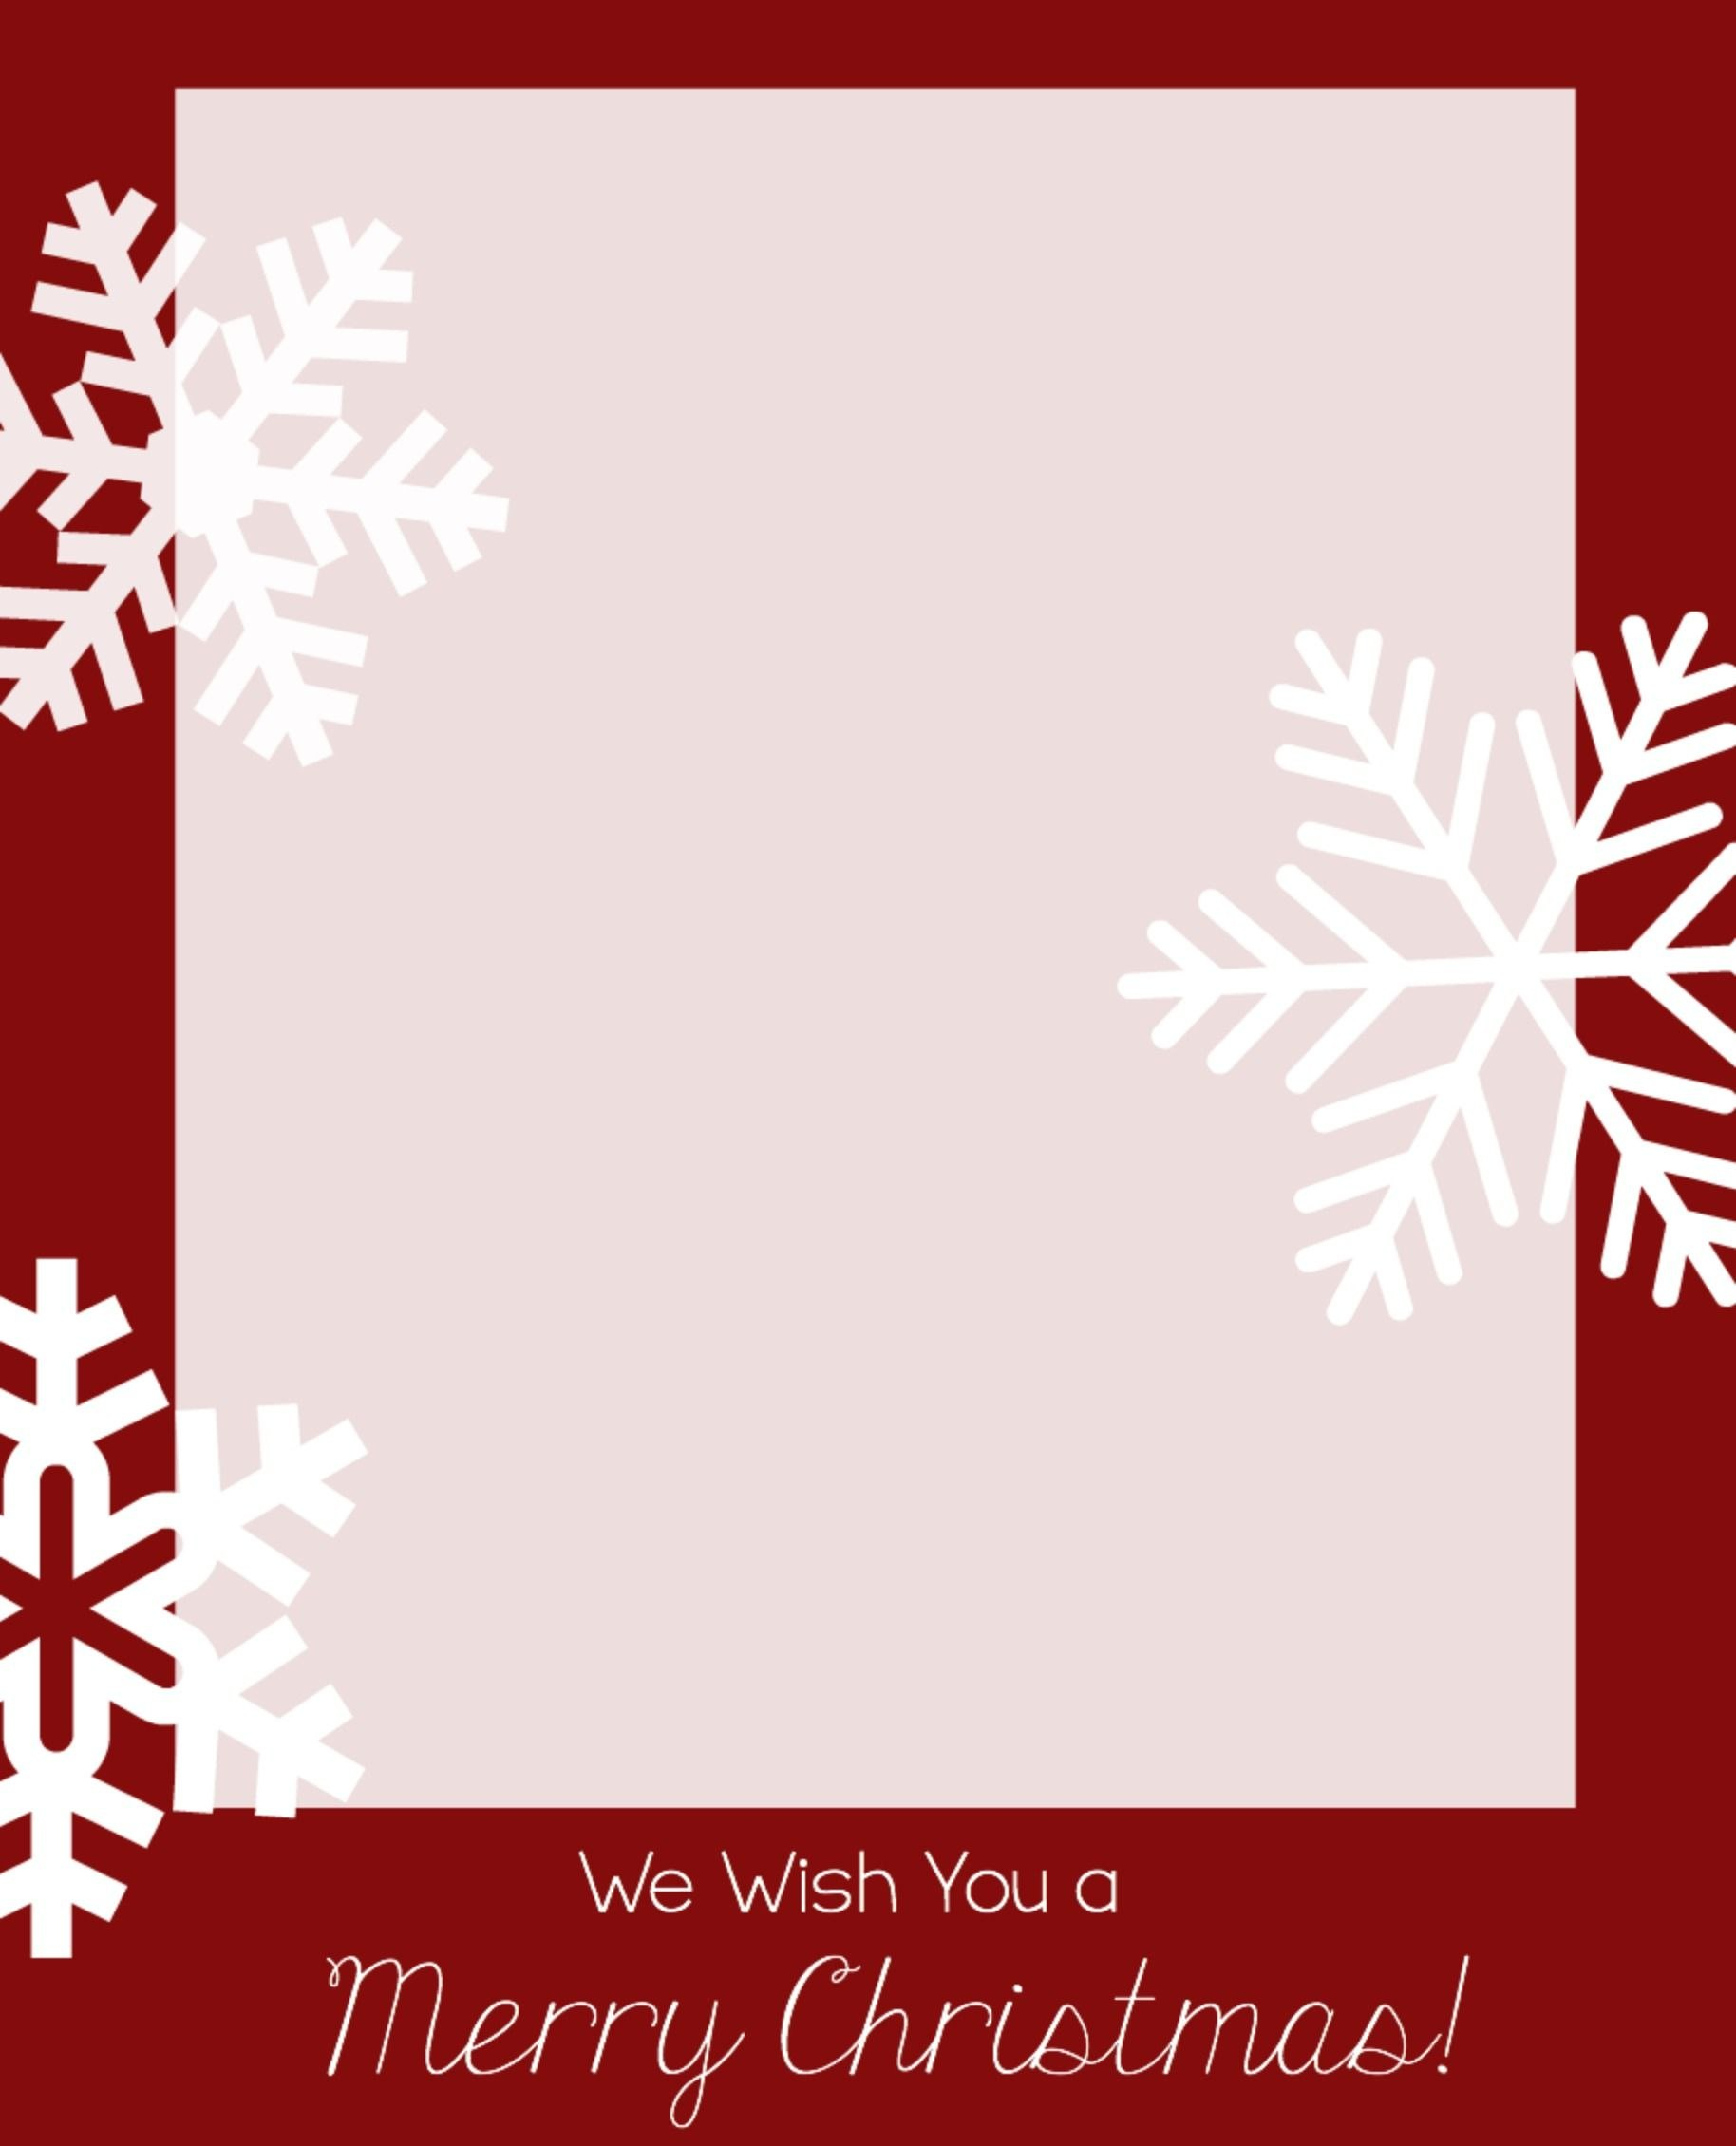 Template Ideas Holiday Card Templates Remarkable Free Christmas Throughout Free Holiday Photo Card Templates